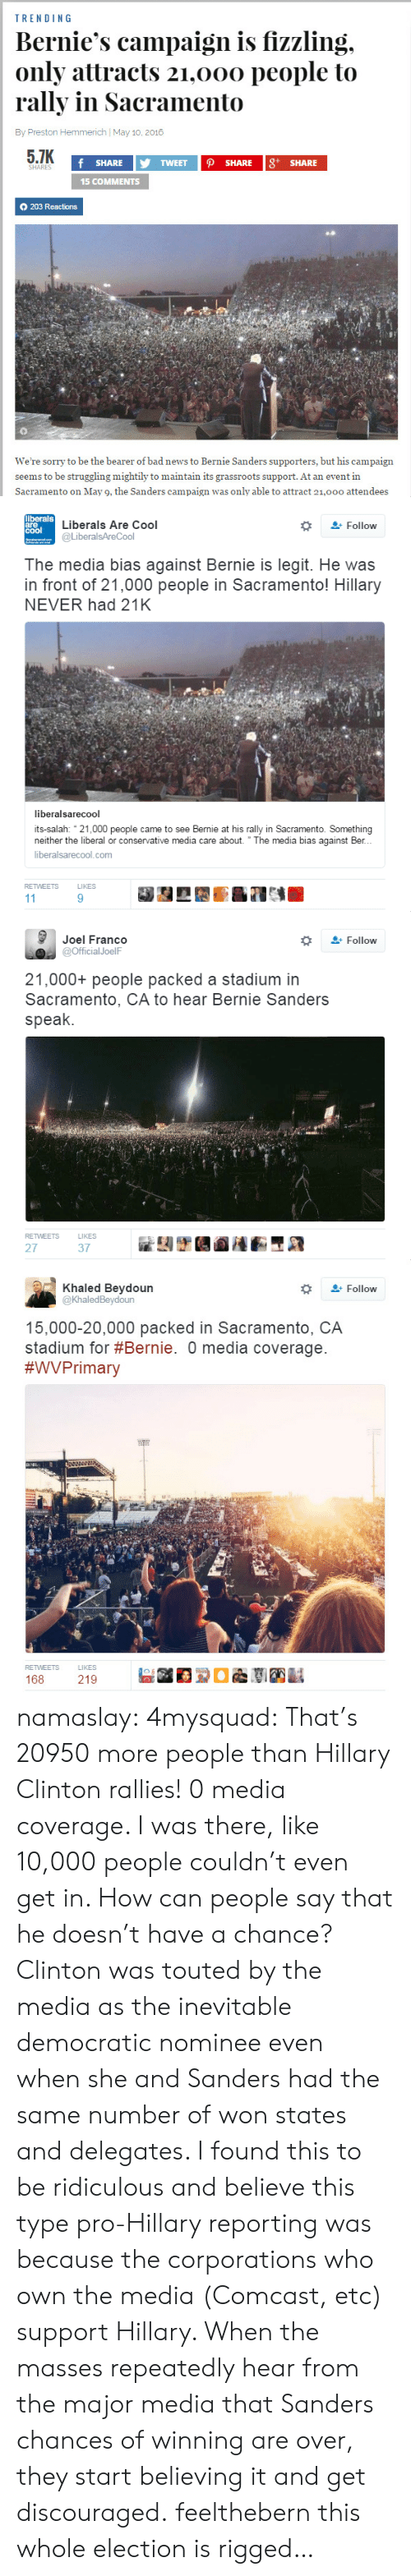 "Bad, Bernie Sanders, and Hillary Clinton: TRENDING  Bernie's campaign is fizzling.  only attracts 21.00o people to  rally in Sacramento  By Preston Hemmerich May 10, 2015  5.7K  f SHARE y TWEET SHARE SHARE  15 COMMENTS  0 203 Reactions  We're sorry to be the bearer of bad news to Bernie Sanders supporters, but his campaign  seems to be struggling mightily to maintain its grassroots support. At an event in  Sacramento on May 9, the Sanders campaign was only able to attract 21,0o0o attendees   liberals  are  coal  Liberals Are Cool  @LiberalsAreCool  Follow  The media bias against Bernie is legit. He was  in front of 21,000 people in Sacramento! Hillary  NEVER had 21K  iberalsarecool  its-salah: 21,000 people came to see Bernie at his rally in Sacramento. Something  neither the liberal or conservative media care about. ""The media bias against Ber.  liberalsarecool.com  RETWEETS  LIKES  9   Joel Franco  @Official JoelF  Follow  21,000+ people packed a stadium in  Sacramento, CA to hear Bernie Sanders  speak.  RETWEETS  LIKES  27  37   Khaled Beydoun  @KhaledBeydoun  Follow  15,000-20,000 packed in Sacramento, CA  stadium for #Bernie. media coverage  #WV Primary  RETWEETS  LIKES namaslay:  4mysquad:      That's 20950 more people than Hillary Clinton rallies!      0 media coverage.      I was there, like 10,000 people couldn't even get in. How can people say that he doesn't have a chance?     Clinton was touted by the media as the inevitable democratic nominee even when she and Sanders had the same number of won states and delegates. I found this to be ridiculous and believe this type pro-Hillary reporting was because the corporations who own the media (Comcast, etc) support Hillary. When the masses repeatedly hear from the major media that Sanders chances of winning are over, they start believing it and get discouraged.   feelthebern  this whole election is rigged…"